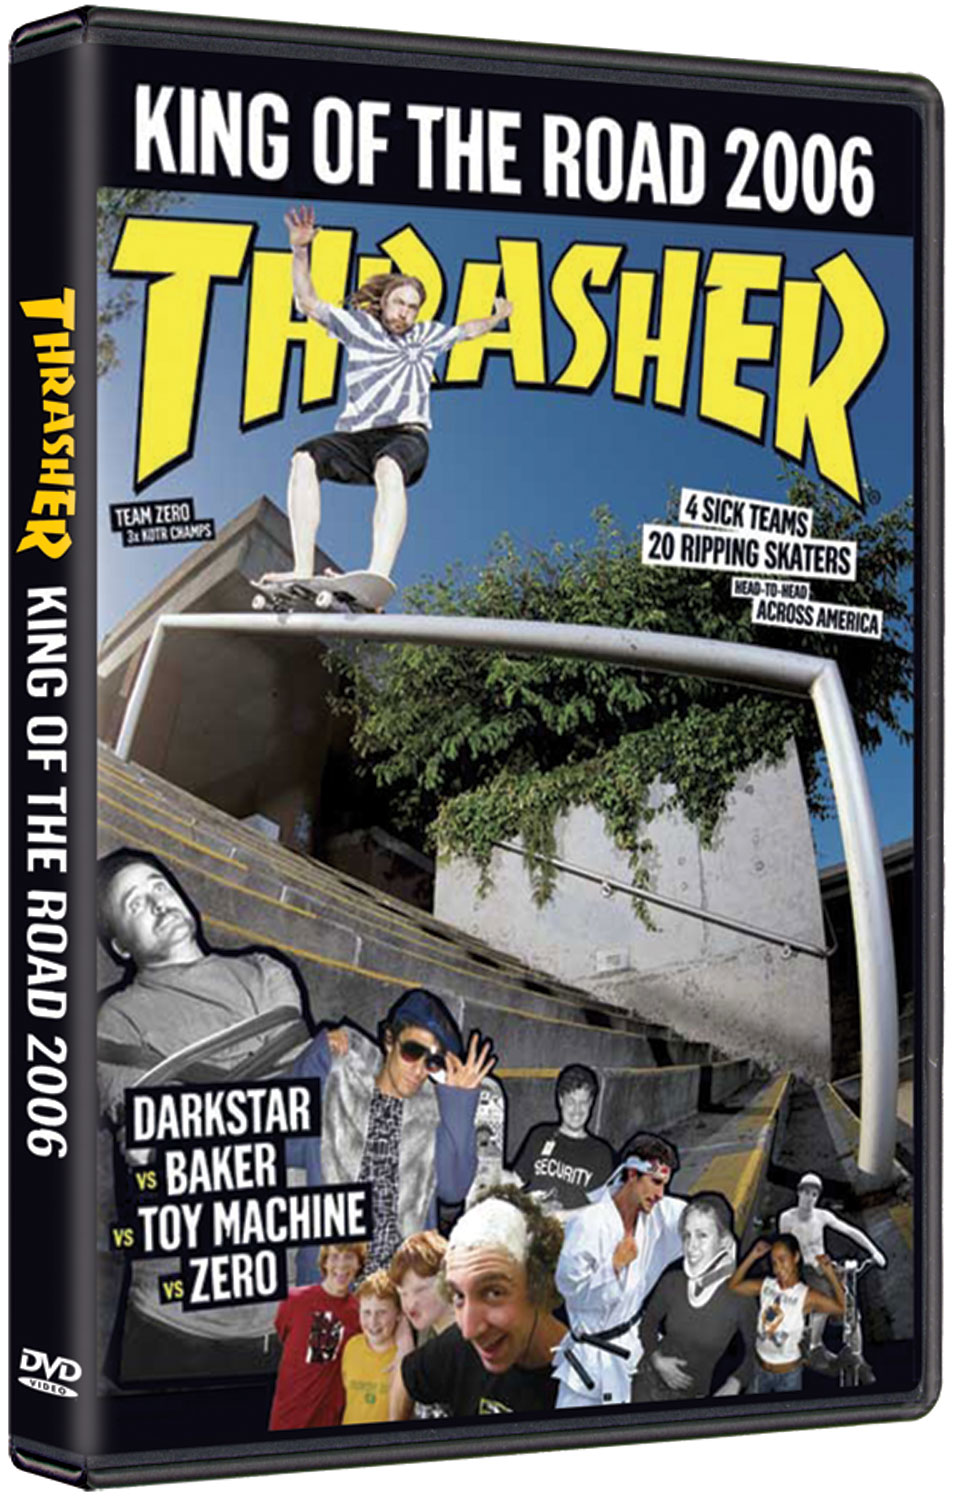 Skateboard Skateboarding DVD Thrasher's King of the Road 2006. Skateboarding DVD. Zero didn't come back so 2006 was a whole new ballgame. Blind vs Foundation vs Zoo York vs Black Label. Ride along as the four teams make their way across the US skating, filming, and earning points. You know the drill.... Includes Jake Duncombe, Shuriken Shannon, Adam Alfaro, Ronnie Creager, Brandon Westgate, Sierra Fellers, Slash, Aaron Suski, Don Nguyen, Ricky Oyola, Chet Childress and many more. Skateboarding DVD Thrasher's King of the Road 2006 - $15.95